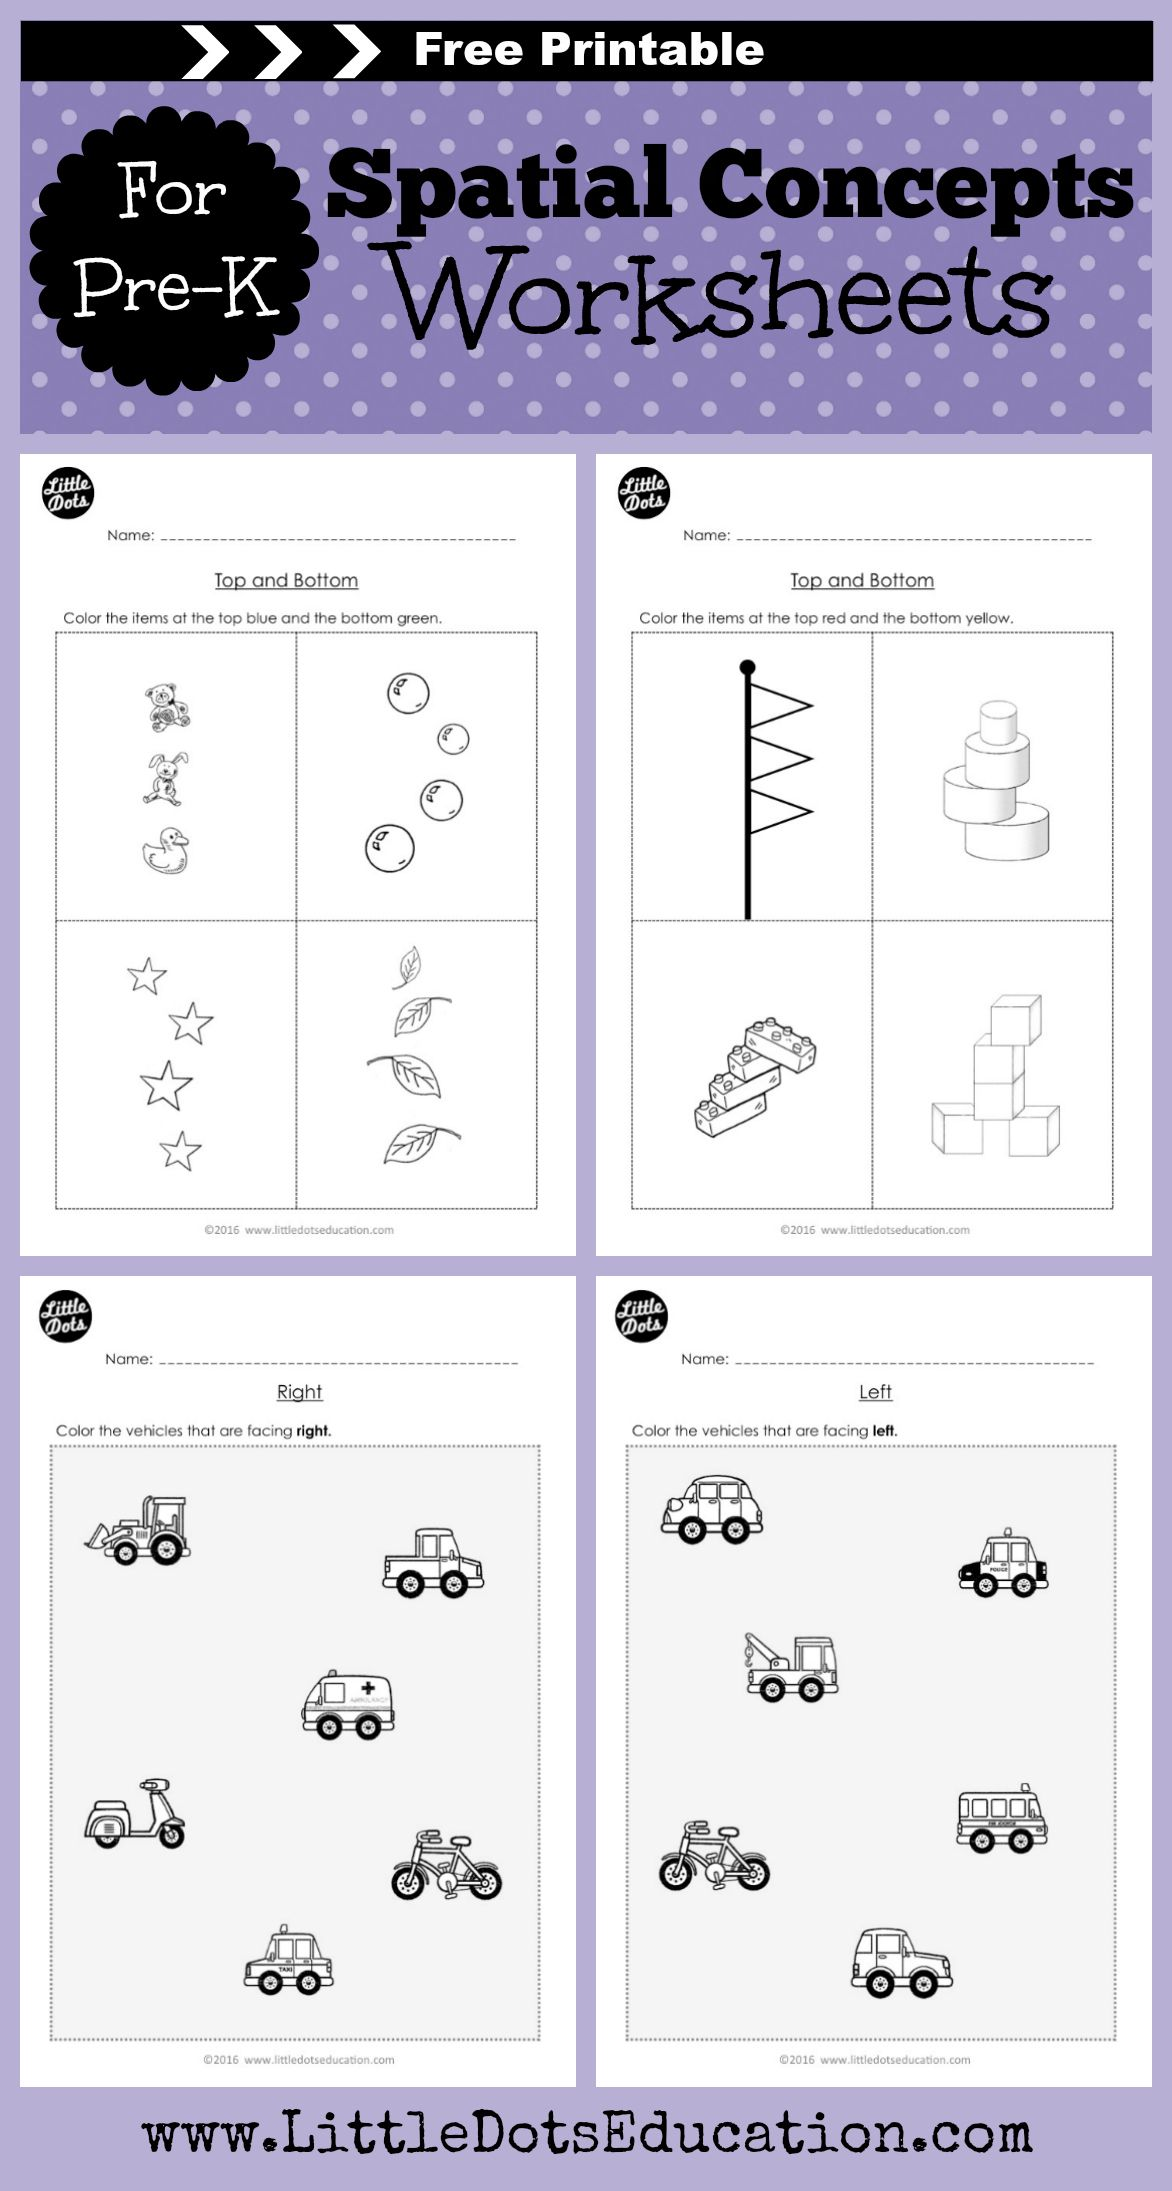 Download Free Worksheets To Learn Basic Spatial Concepts